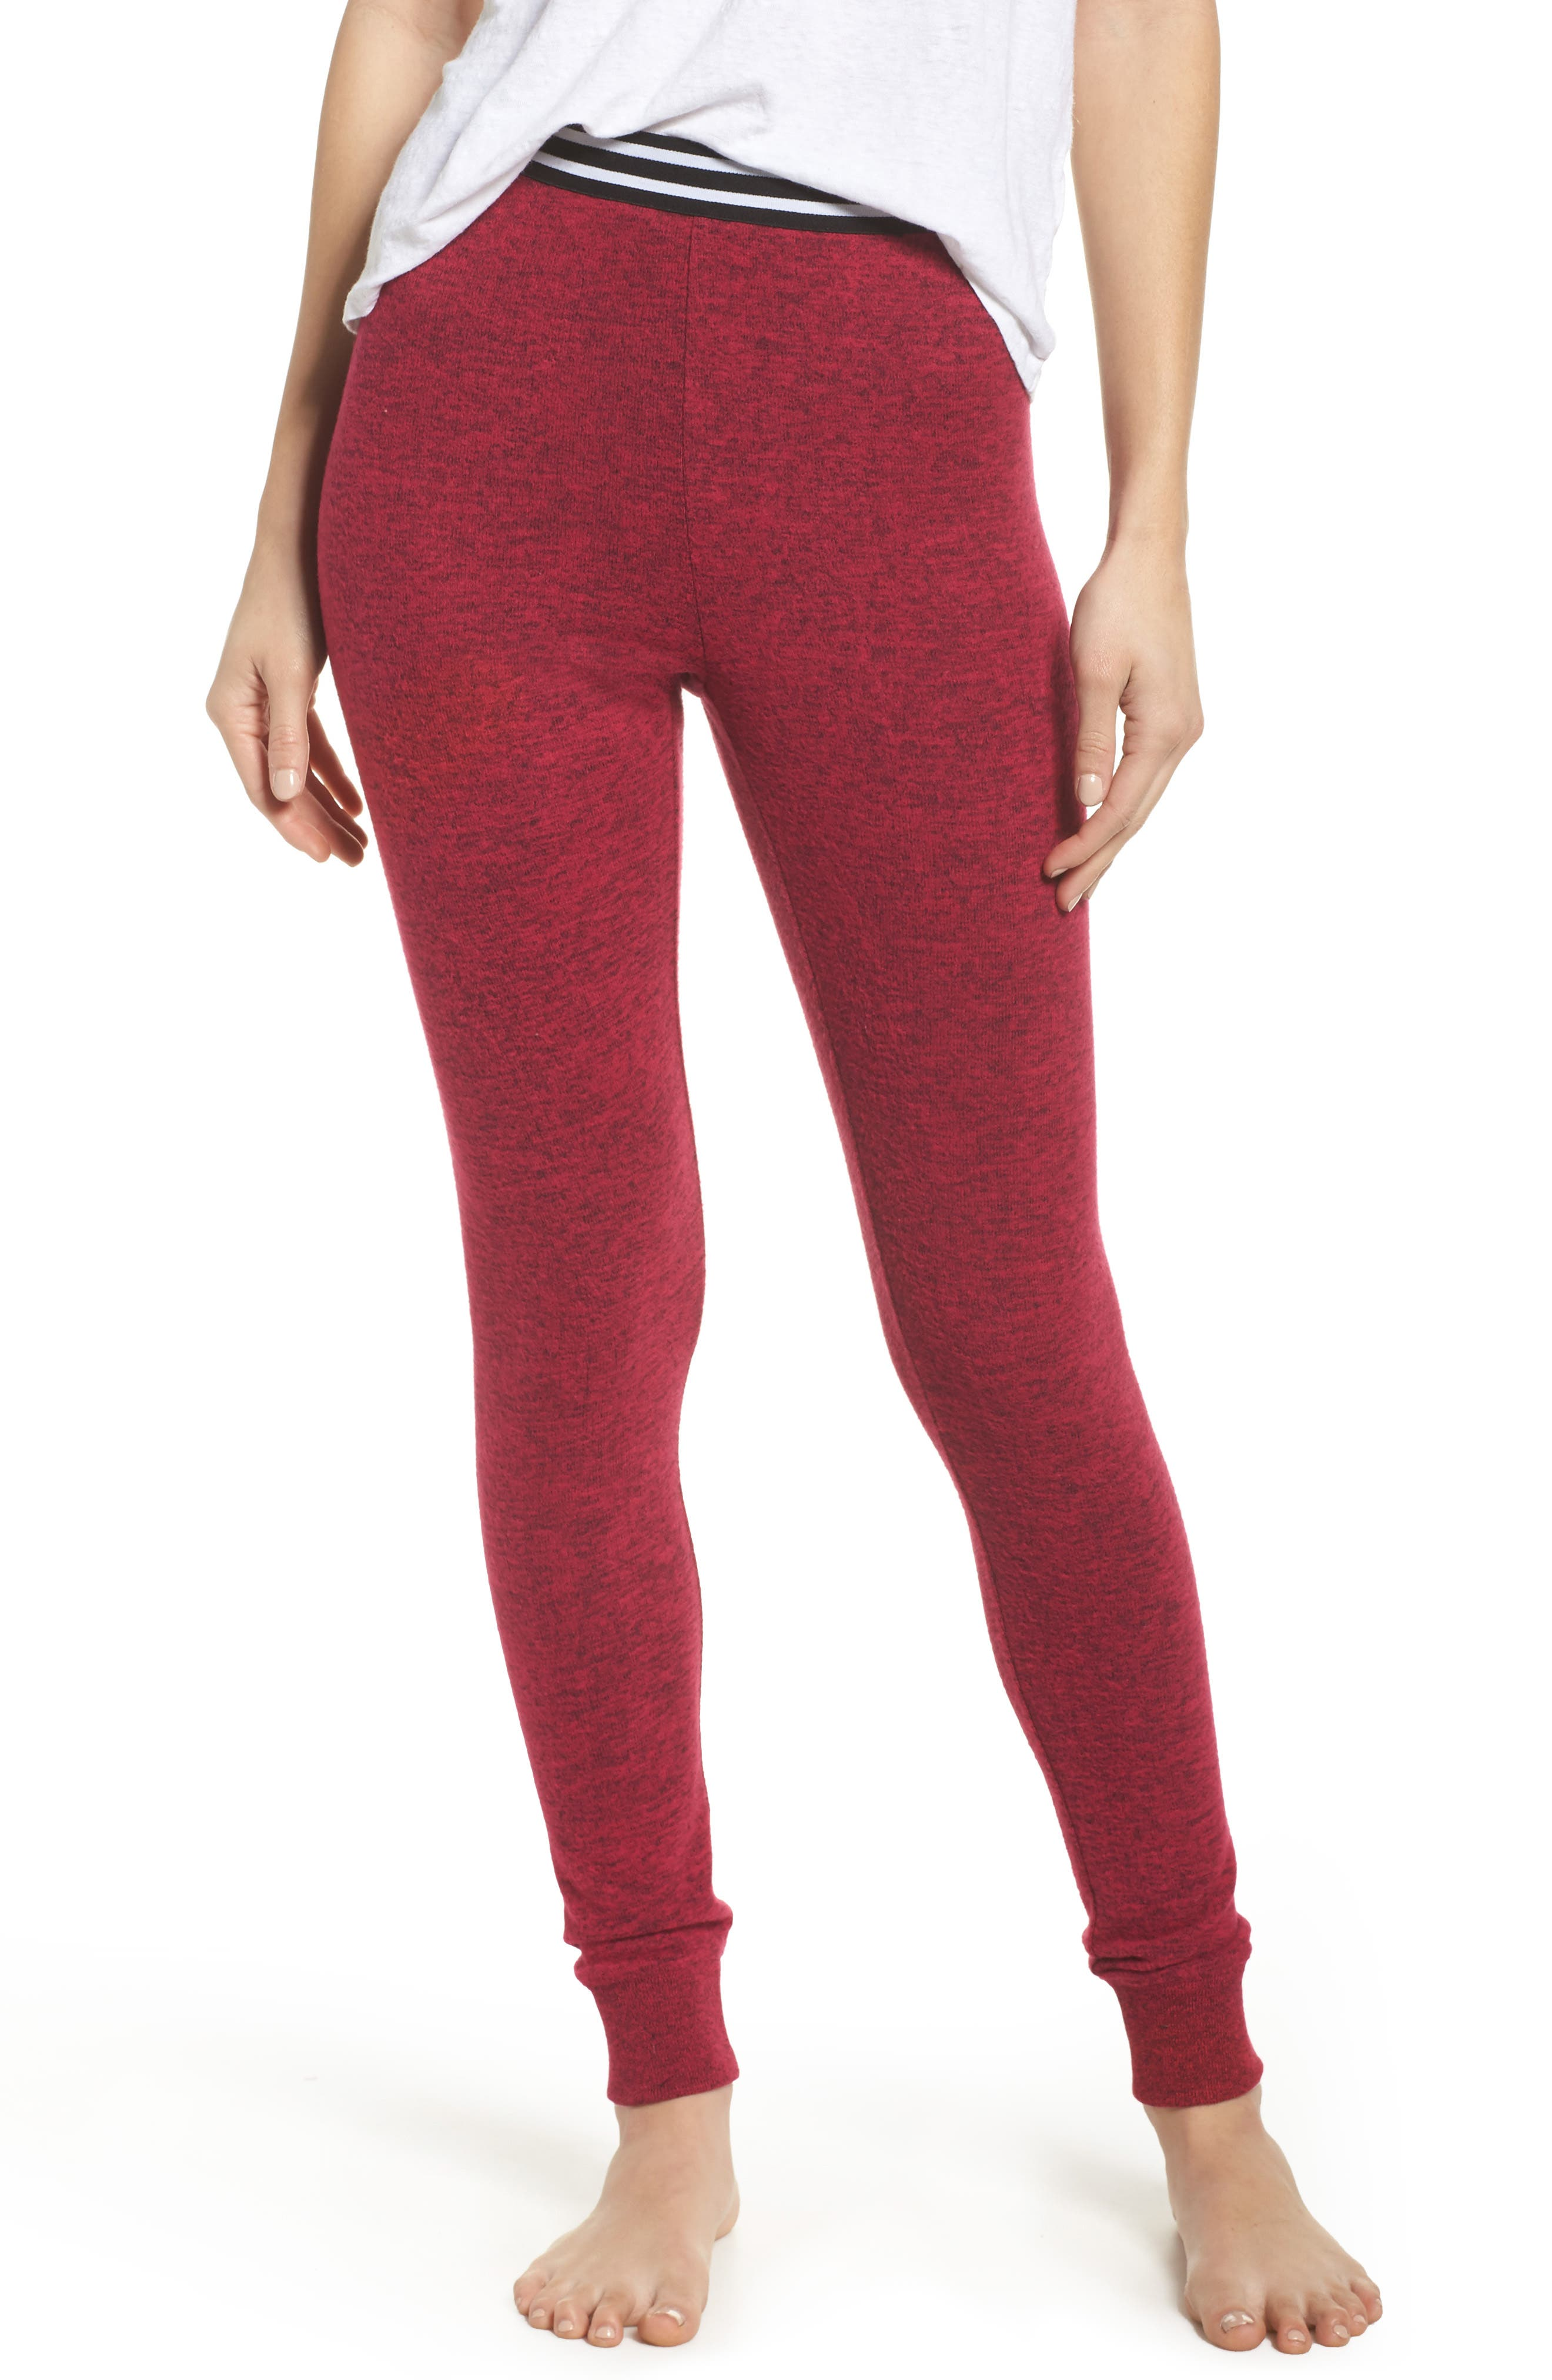 Cuddle Up Lounge Leggings,                         Main,                         color, Pink Vivacious Marl